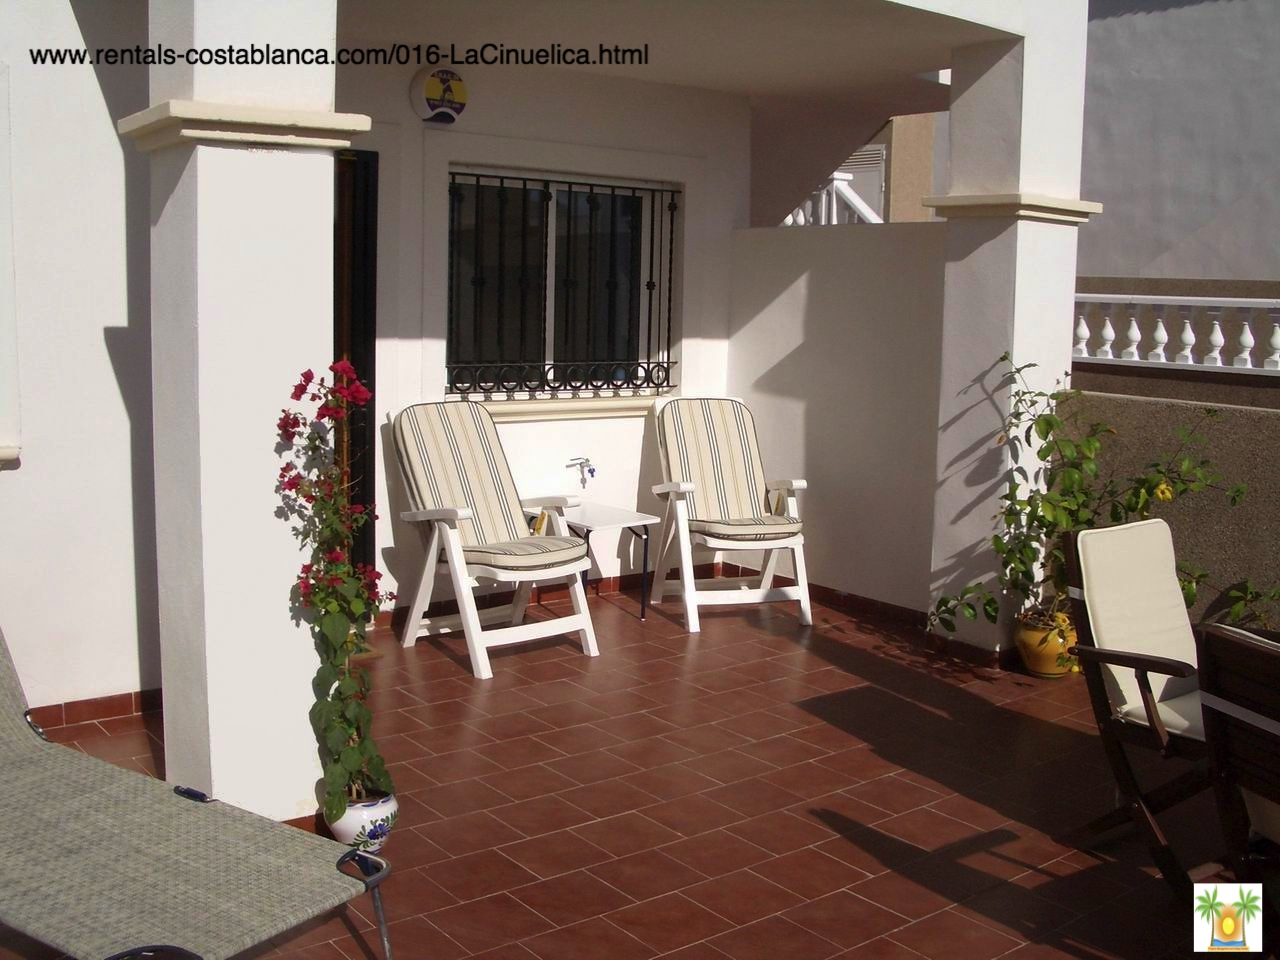 Holiday Rentals & Accommodation - Apartments - Spain - Torrevieja / Alicante / Costa Blanca - Torrevieja